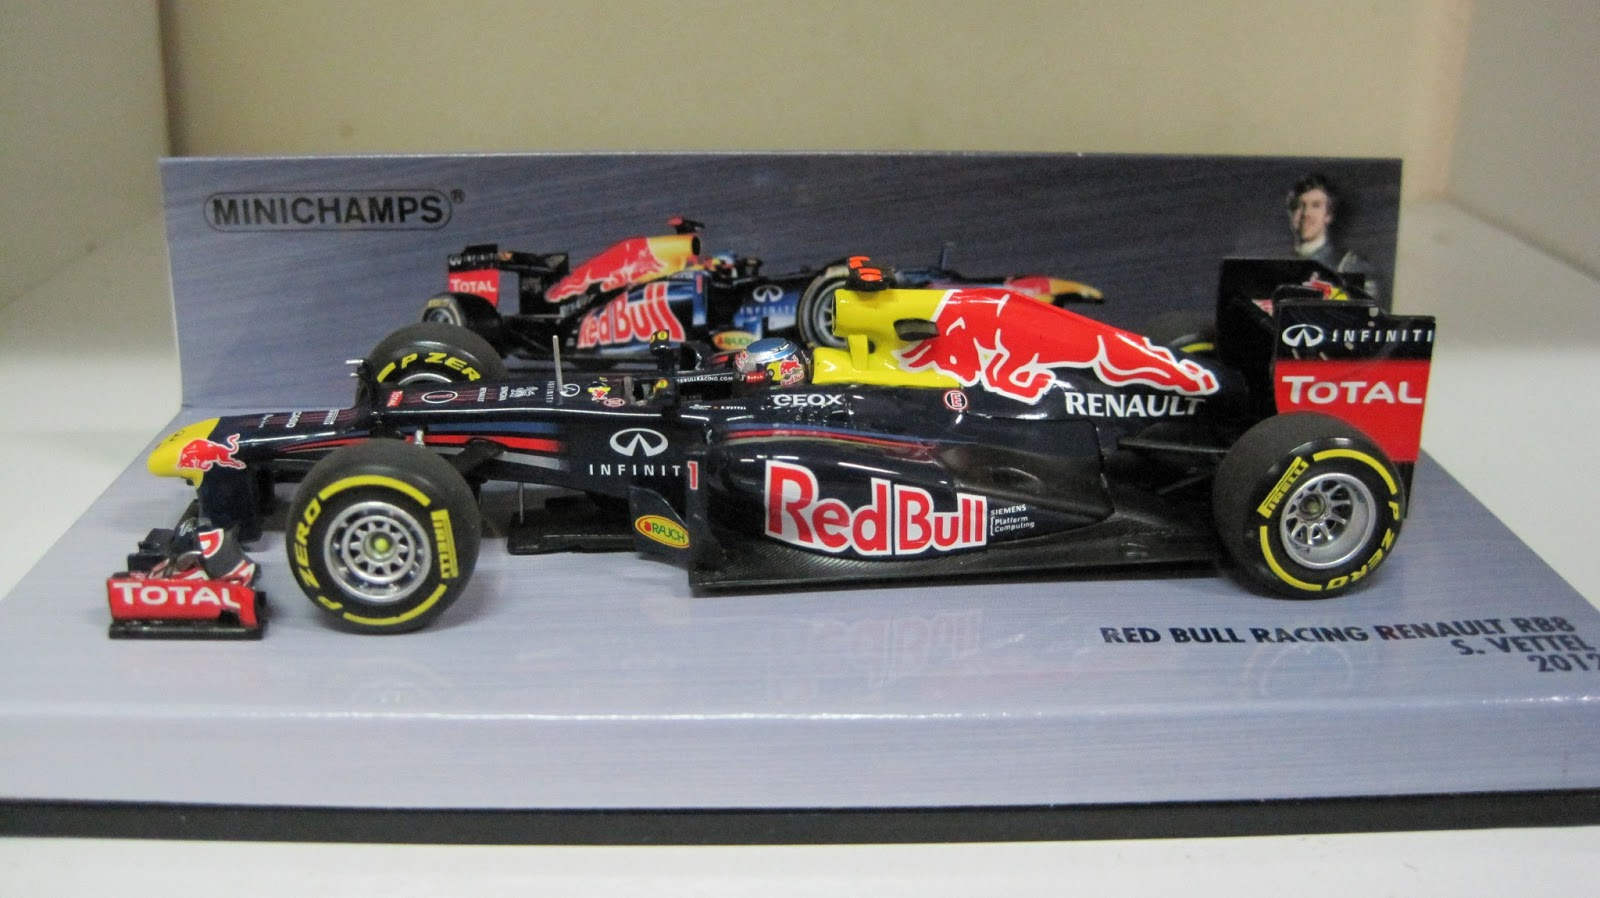 minichamps lego other things red bull racing renault rb8 sebastian vettel 2012 410120001. Black Bedroom Furniture Sets. Home Design Ideas